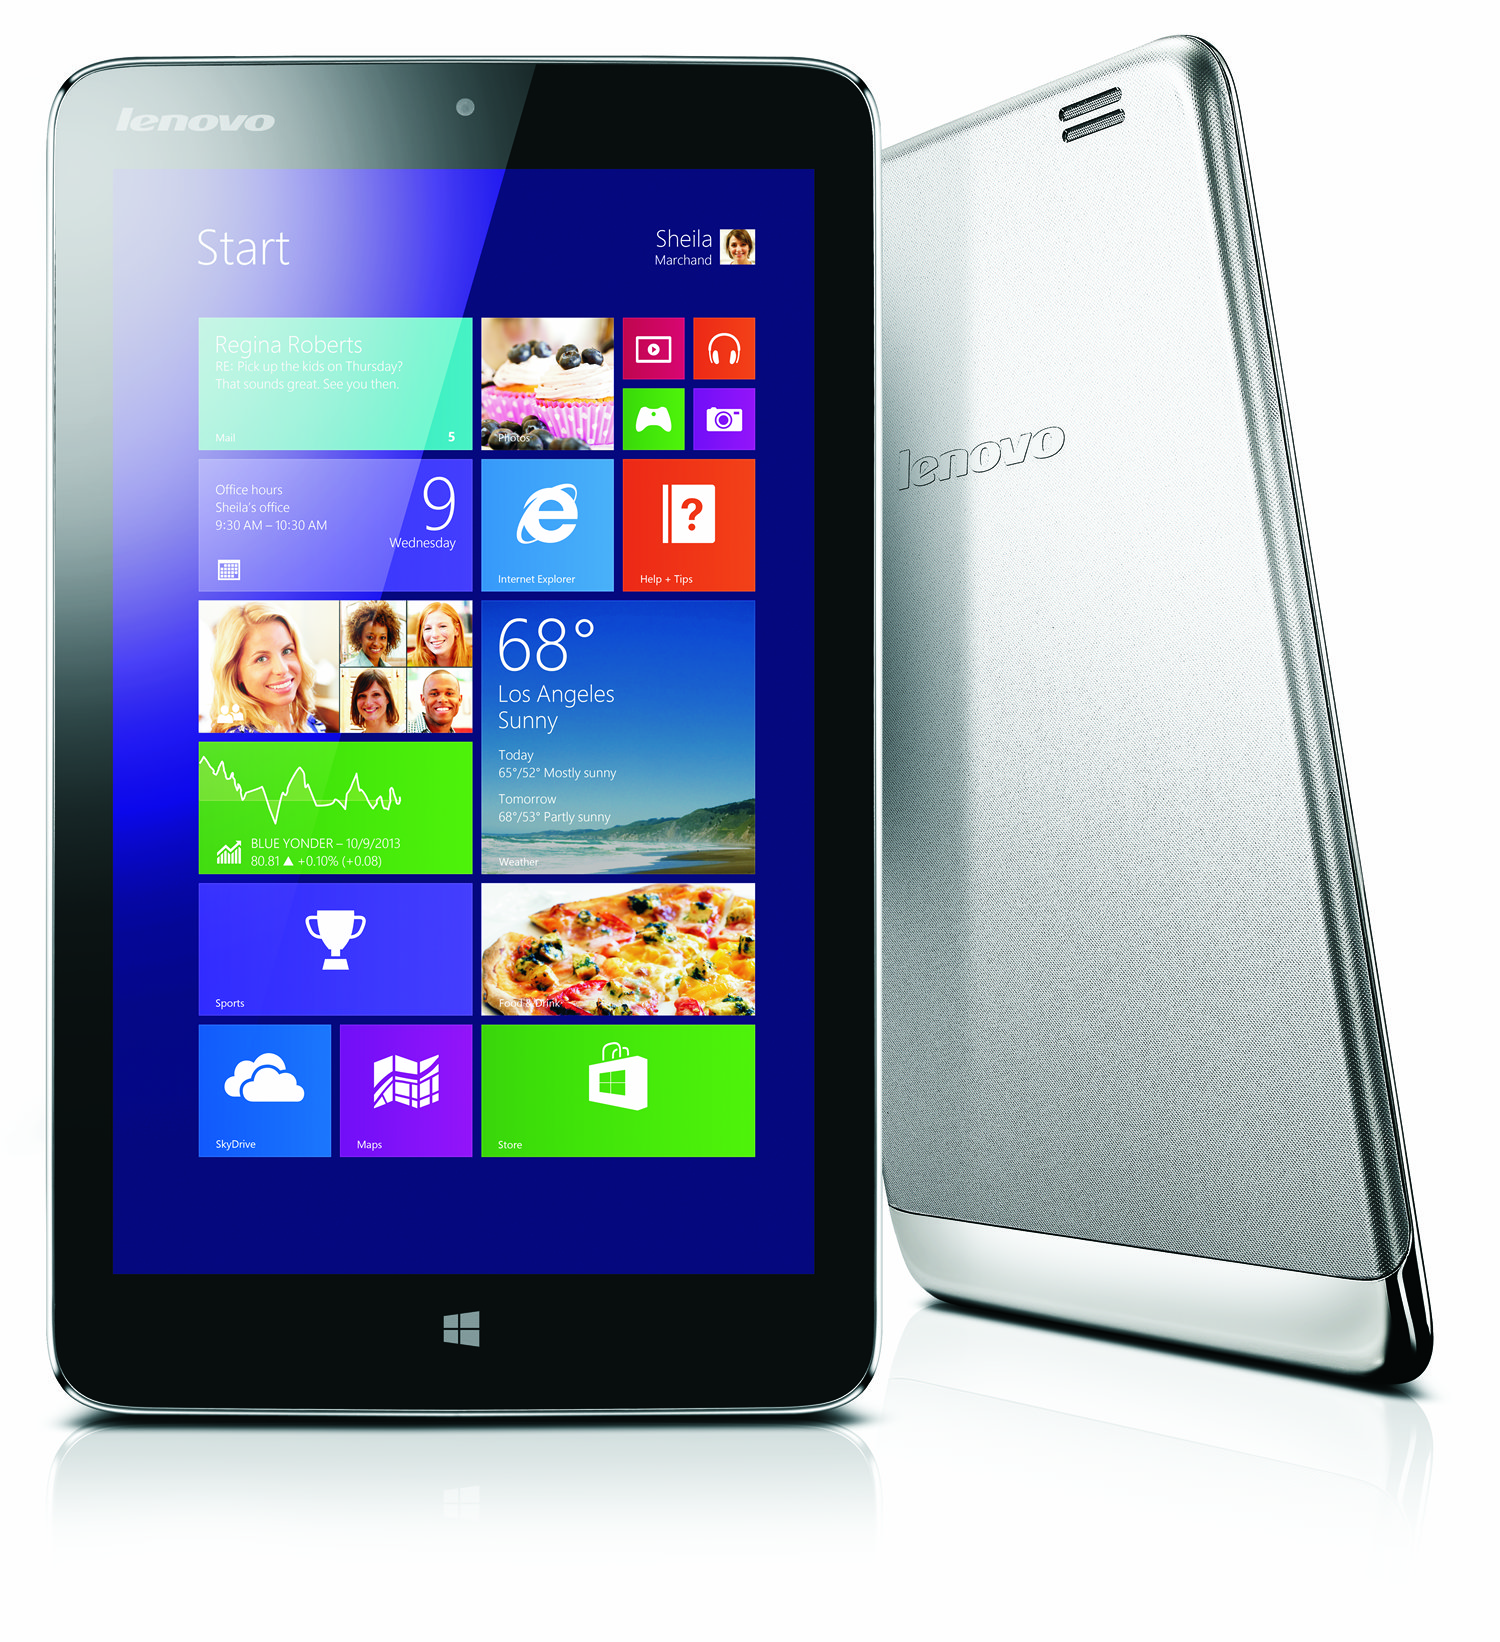 Lenovo Miix2 An 8 Inch Windows 8 1 Tablet